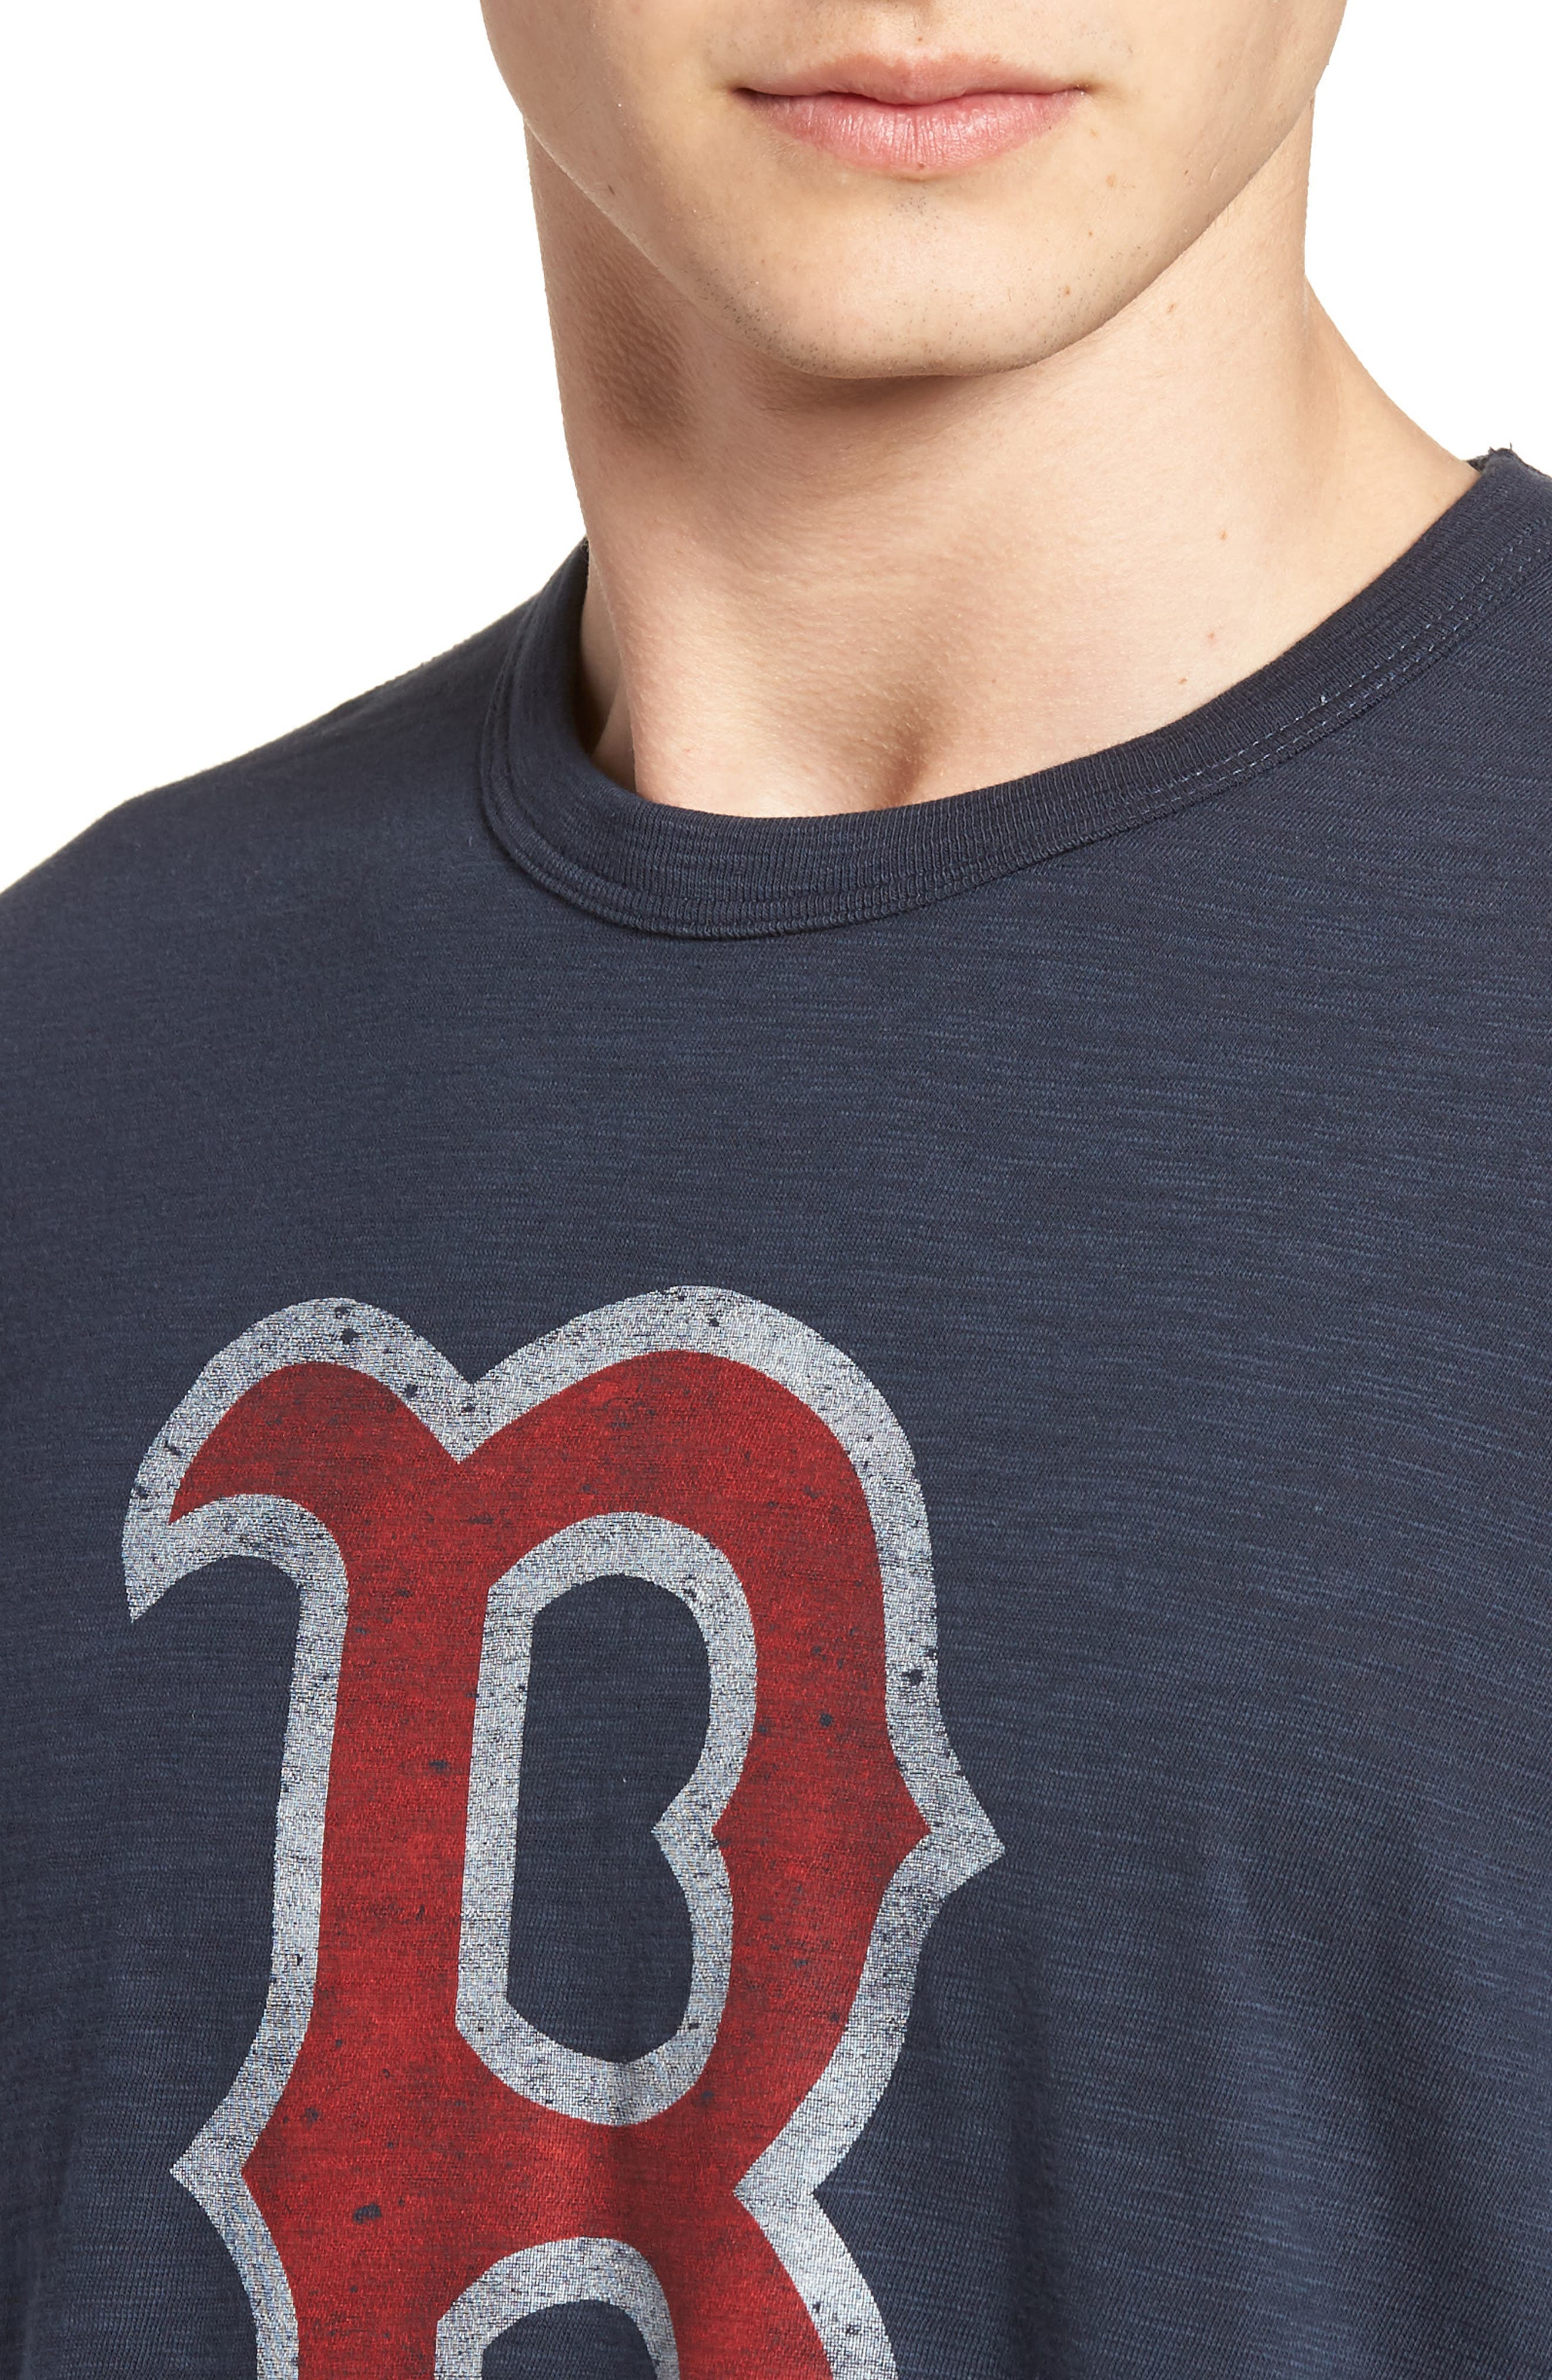 Grit Scrum Boston Red Sox T-Shirt,                             Alternate thumbnail 4, color,                             410